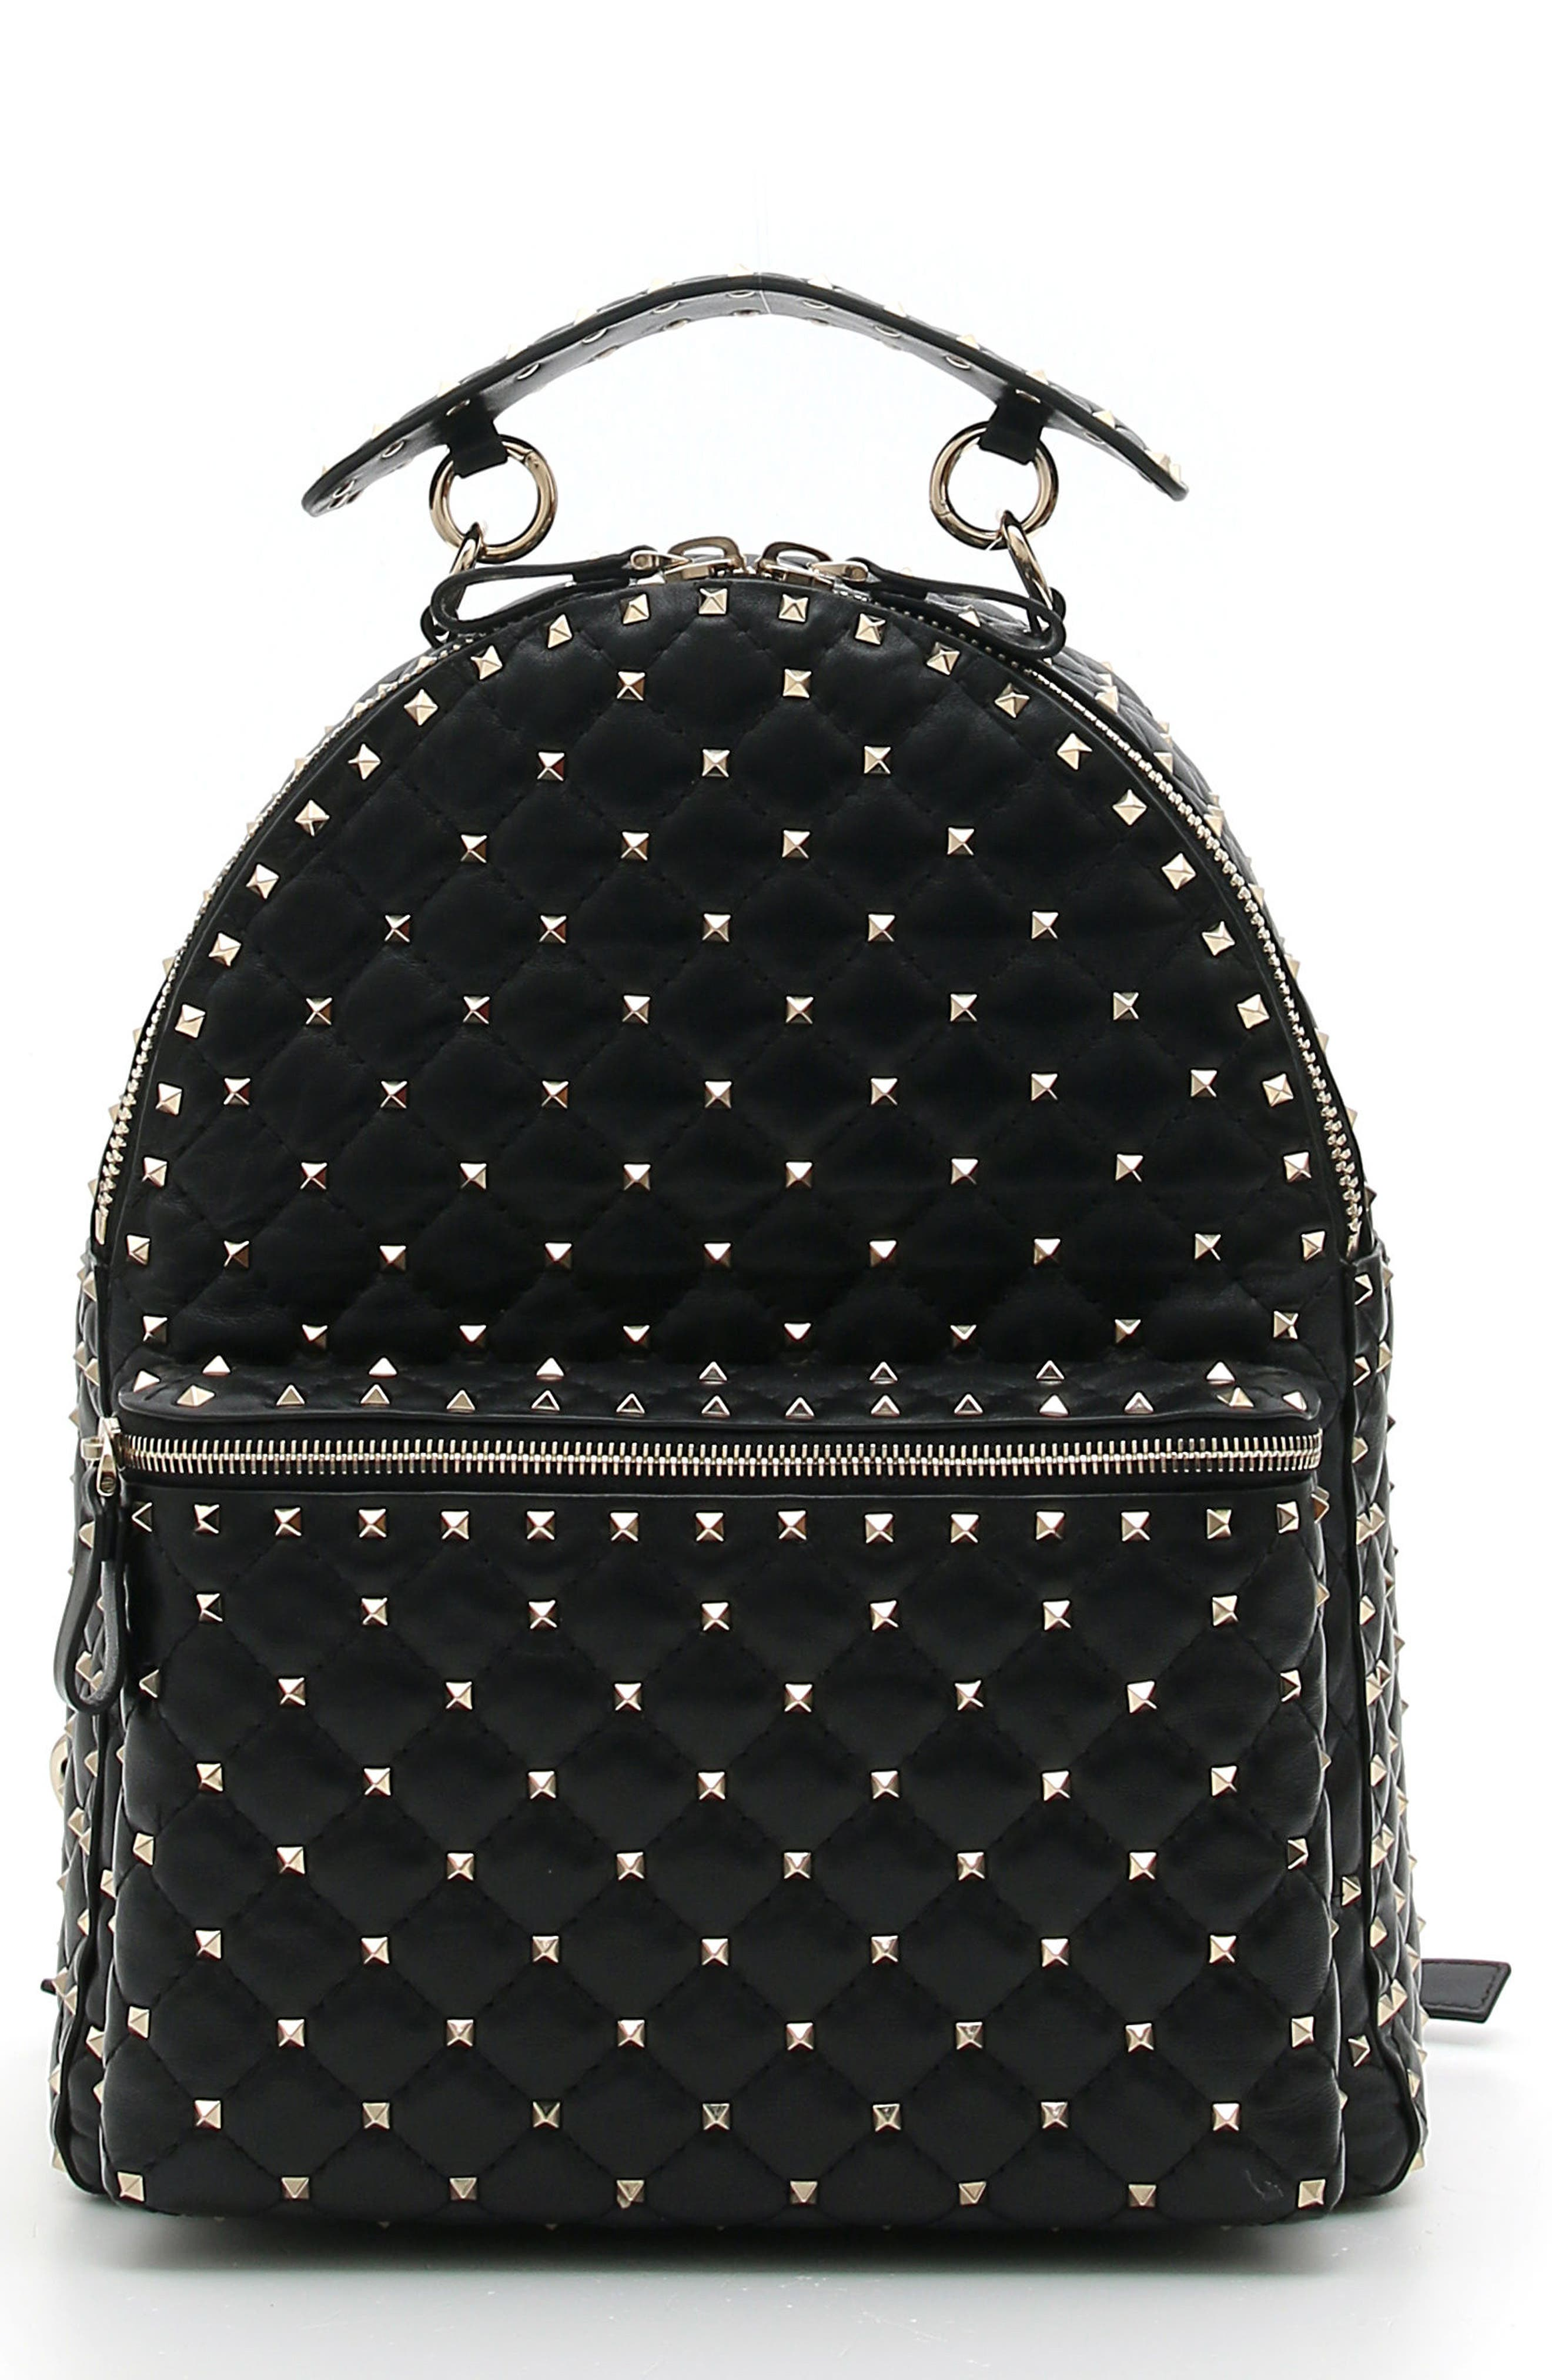 VALENTINO GARAVANI Rockstud Spike Quilted Leather Backpack